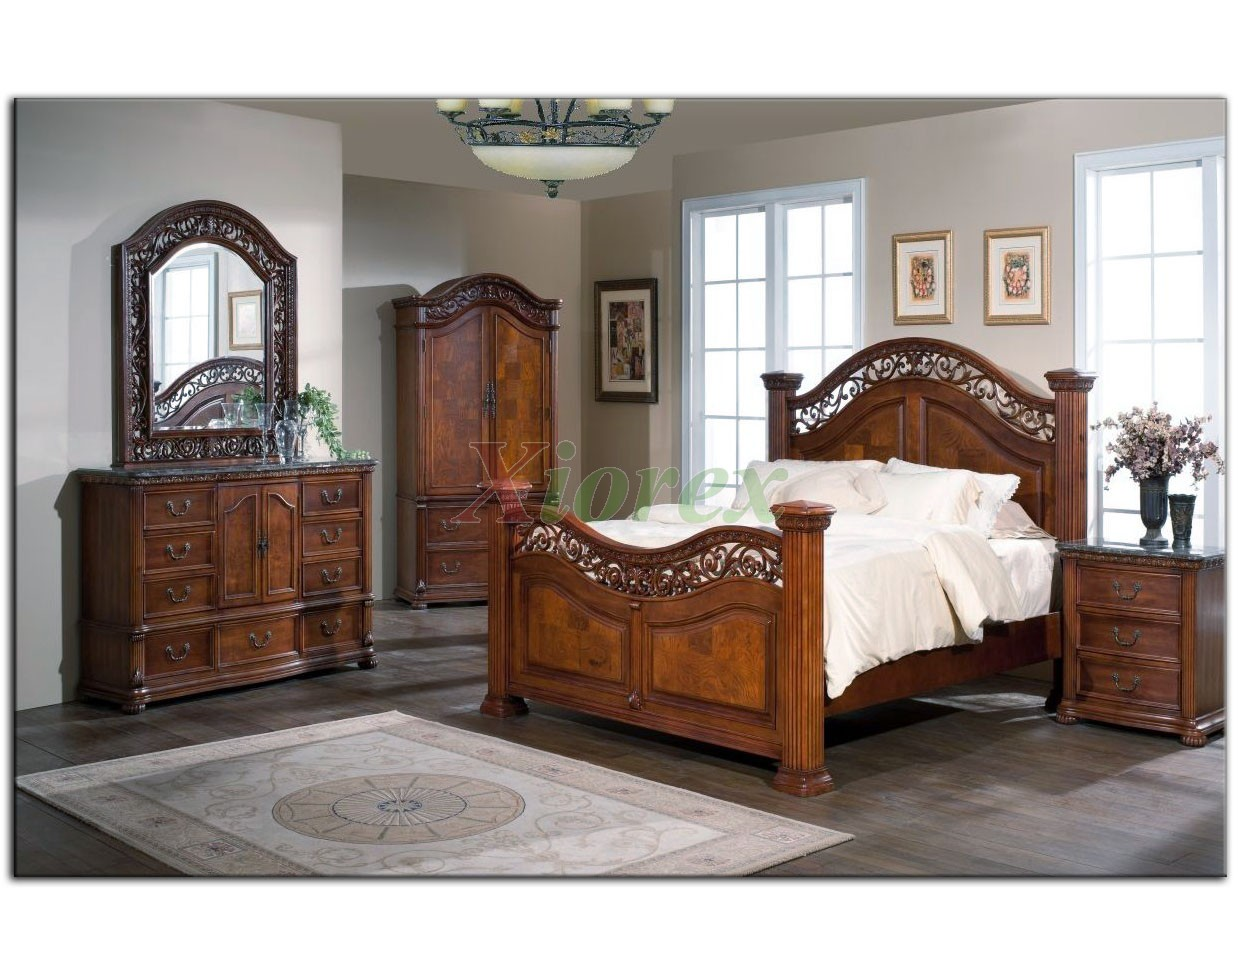 Poster Bedroom Furniture Set 114 Xiorex Poster Bedroom Furniture Set